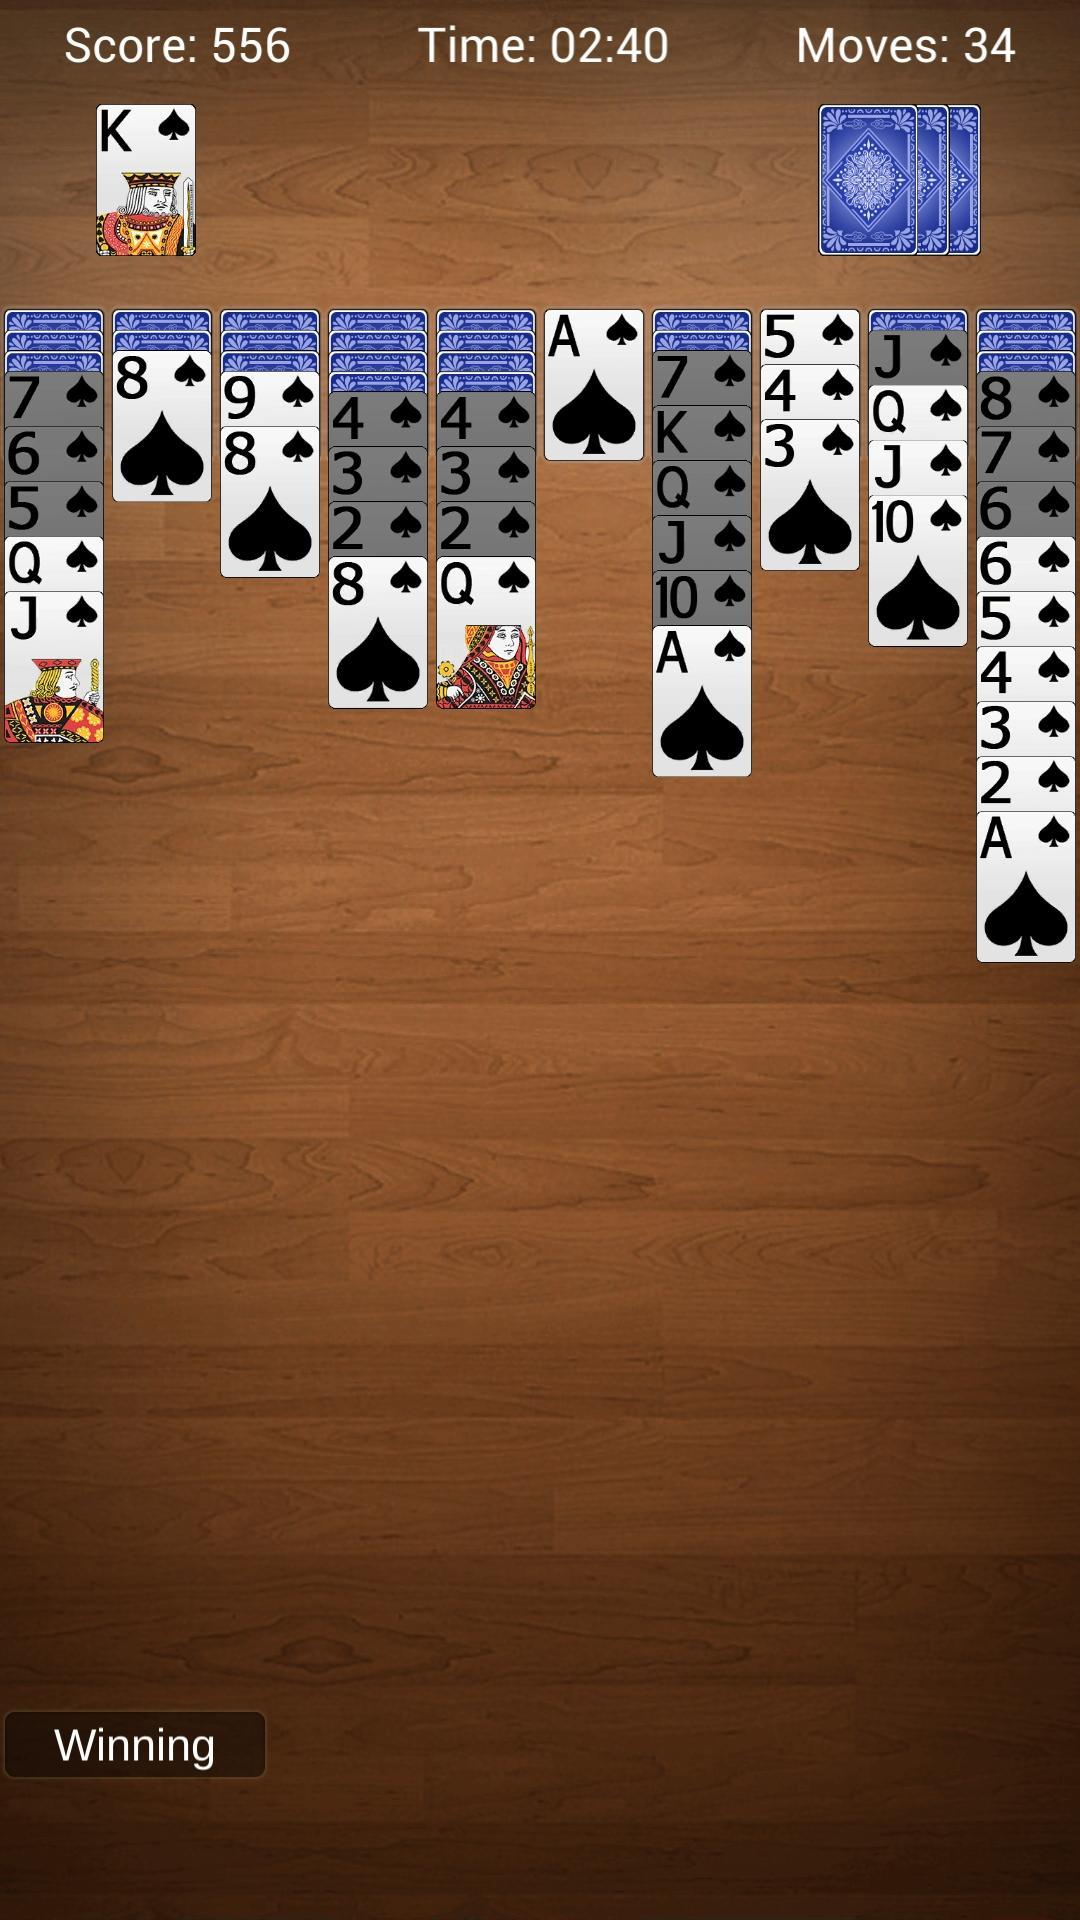 Spider Solitaire - Best Classic Card Games 1.6 Screenshot 5